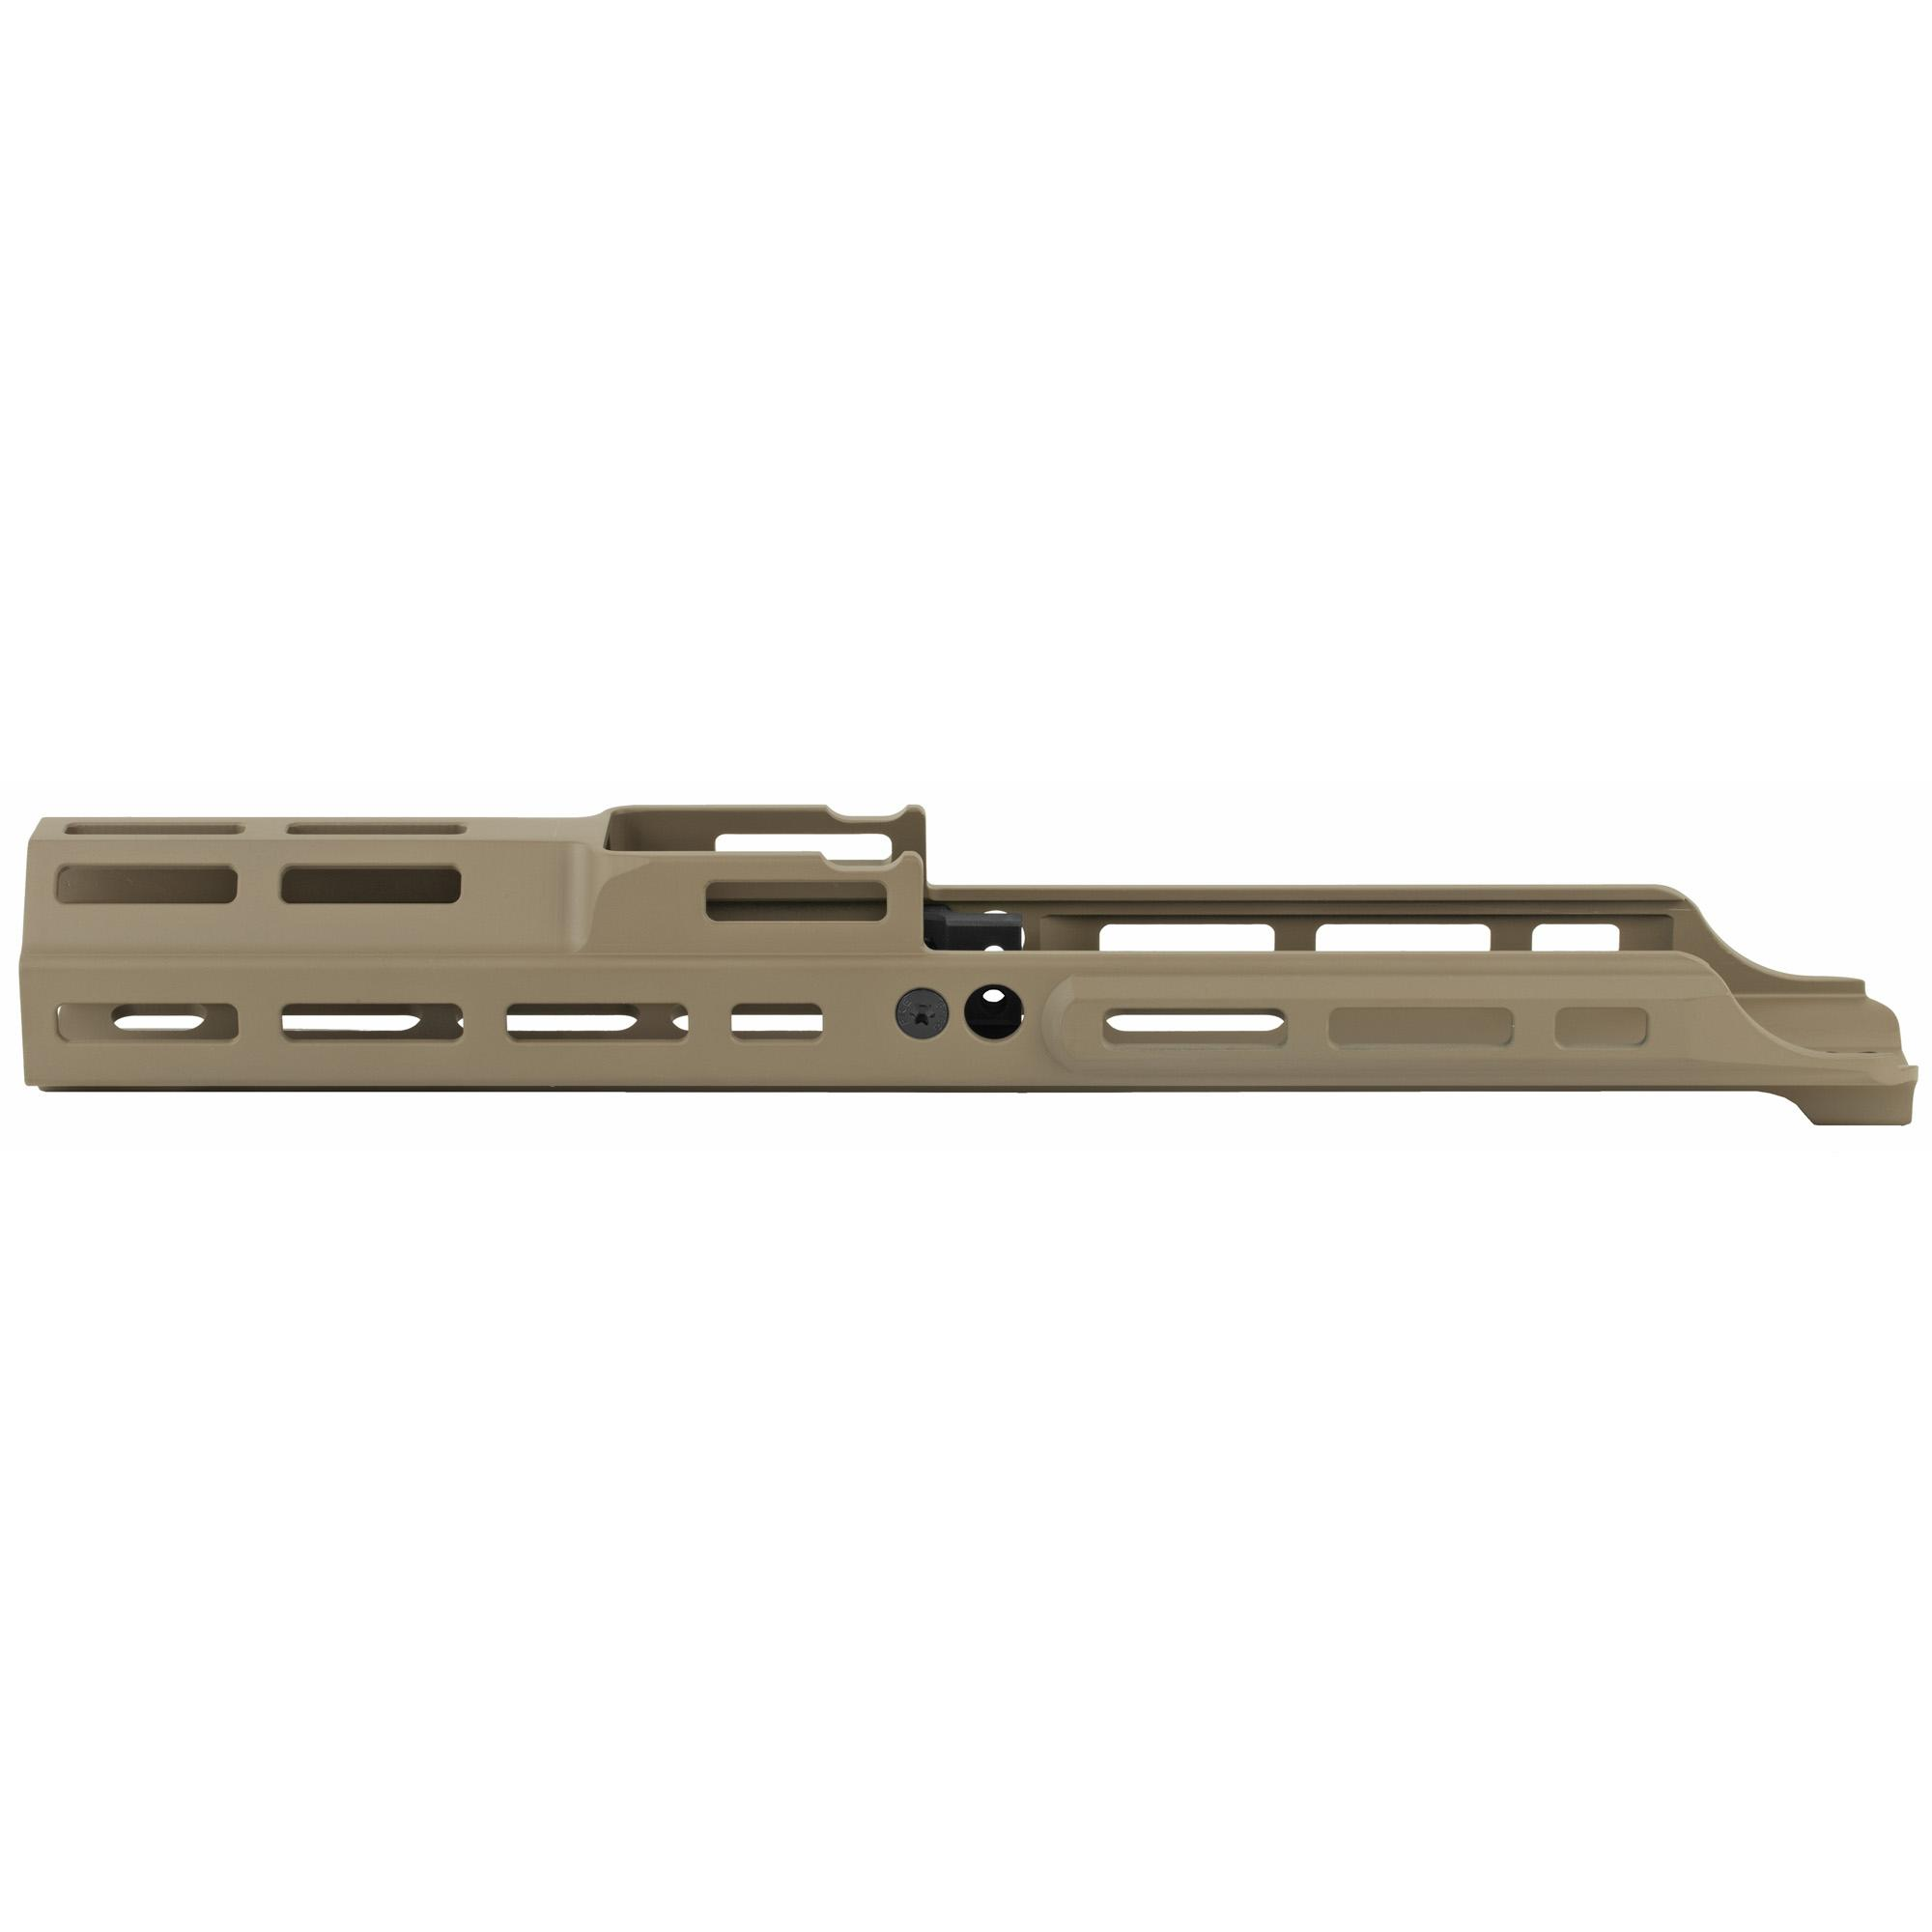 Kinetic Development Group, LLC Kinetic Development Group Scar Mrex Mark Ii M-lok 6.5